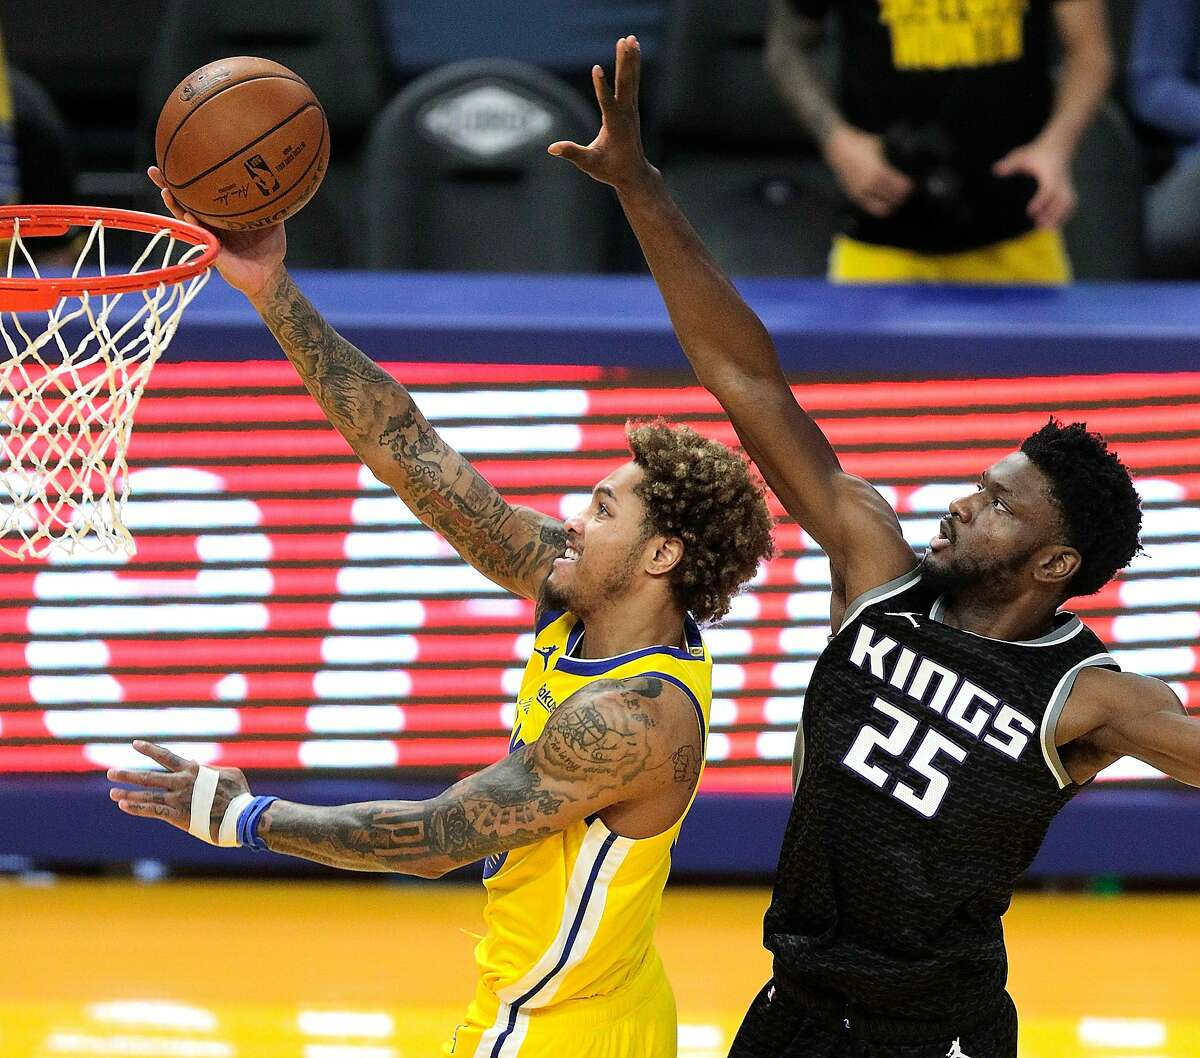 Kelly Oubre Jr. averaged 15.4 points game for the Warriors in 2020-21, but the team did better when he was on the bench.